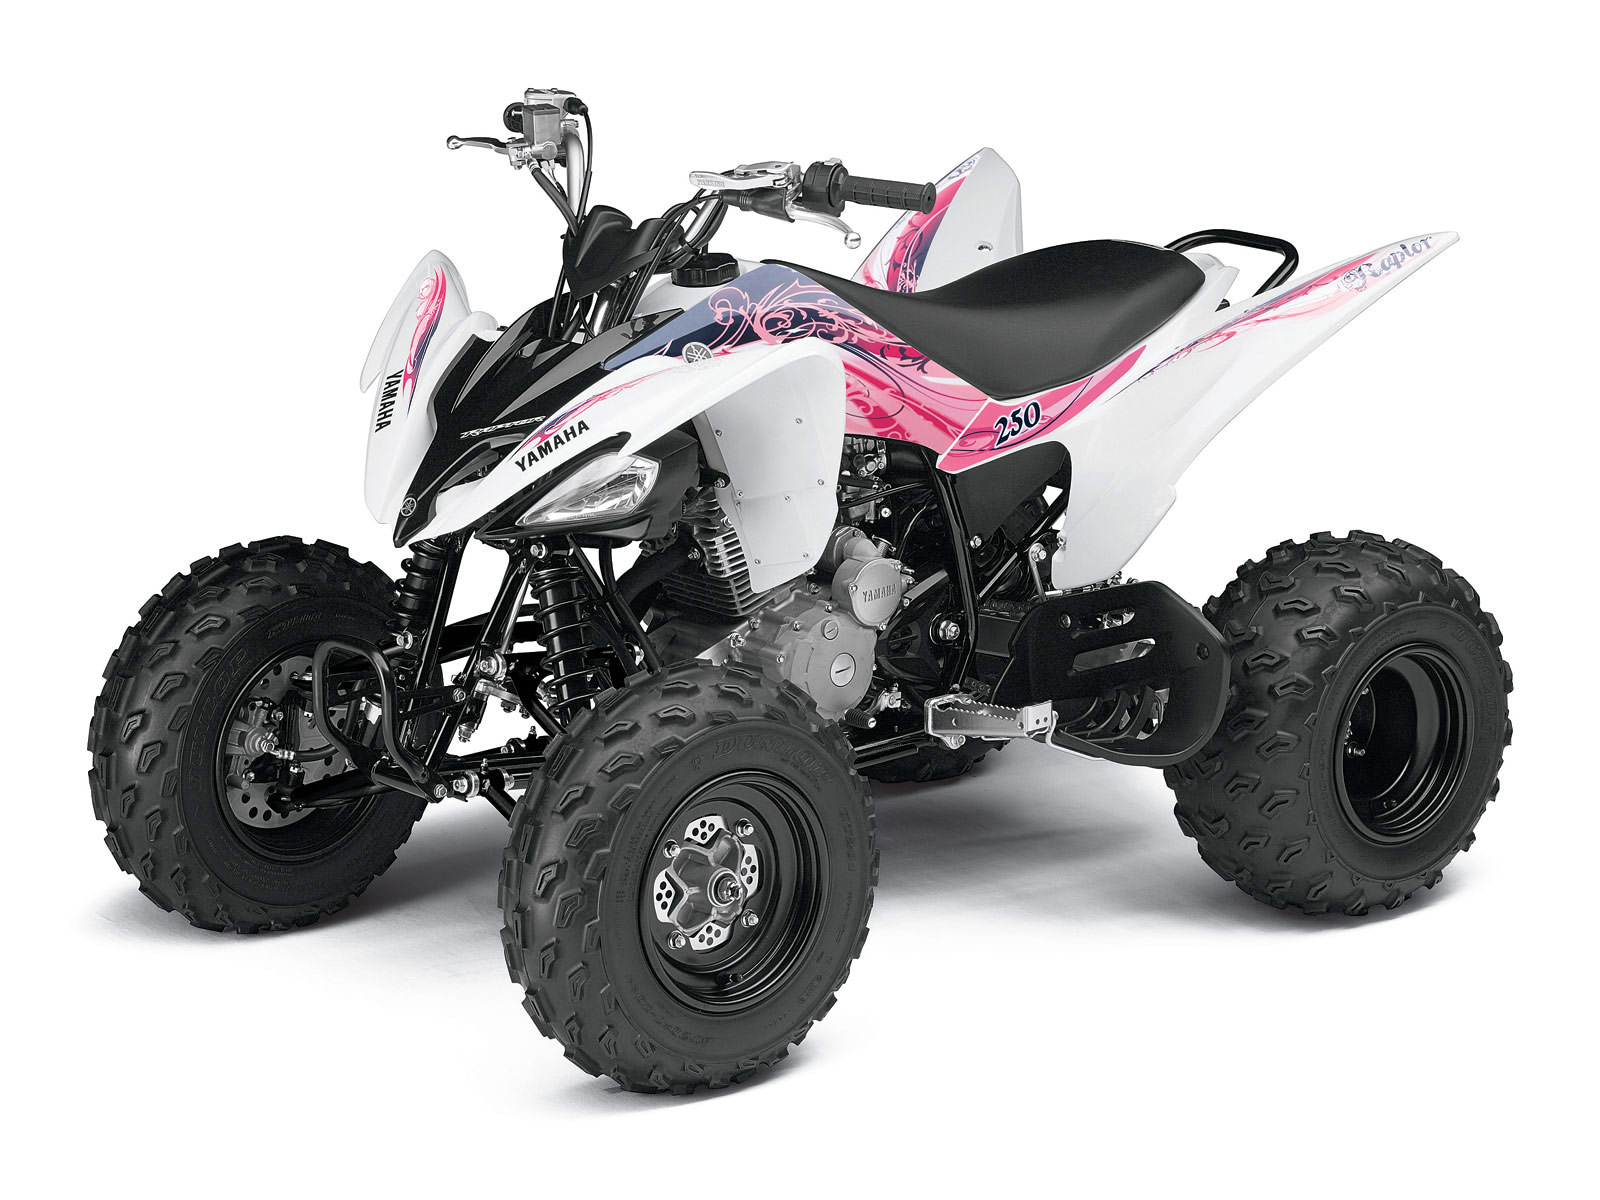 yamaha pictures 2011 raptor 250 atv super moto and. Black Bedroom Furniture Sets. Home Design Ideas